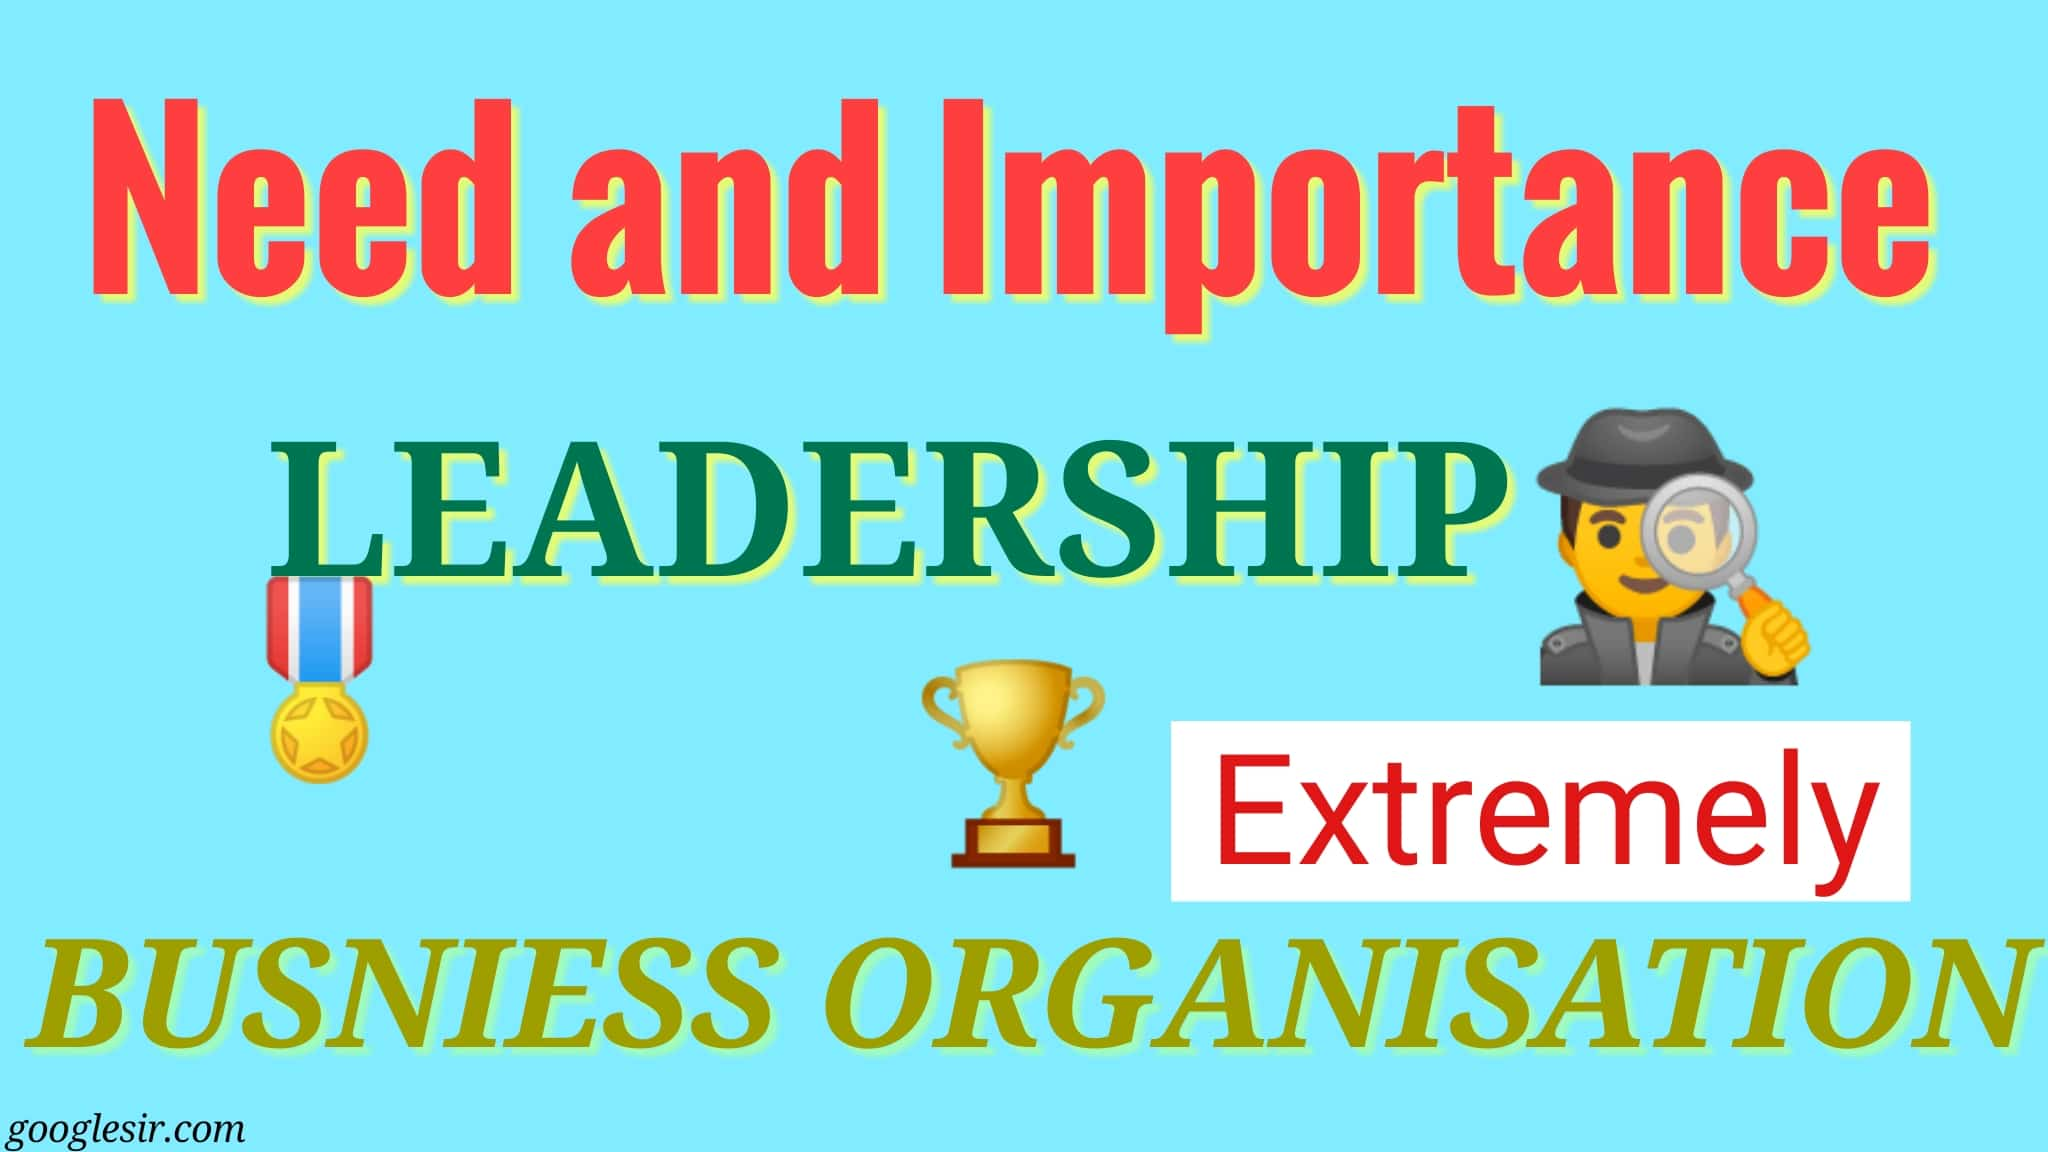 importance of good leadership for a Leadership success clear vision, leadership qualities the ultimate aim of human life and activity is development of character, according to aristotle the most important goal you could hope to accomplish in the course of your life is to become an excellent person with a clear vision, in every respect.